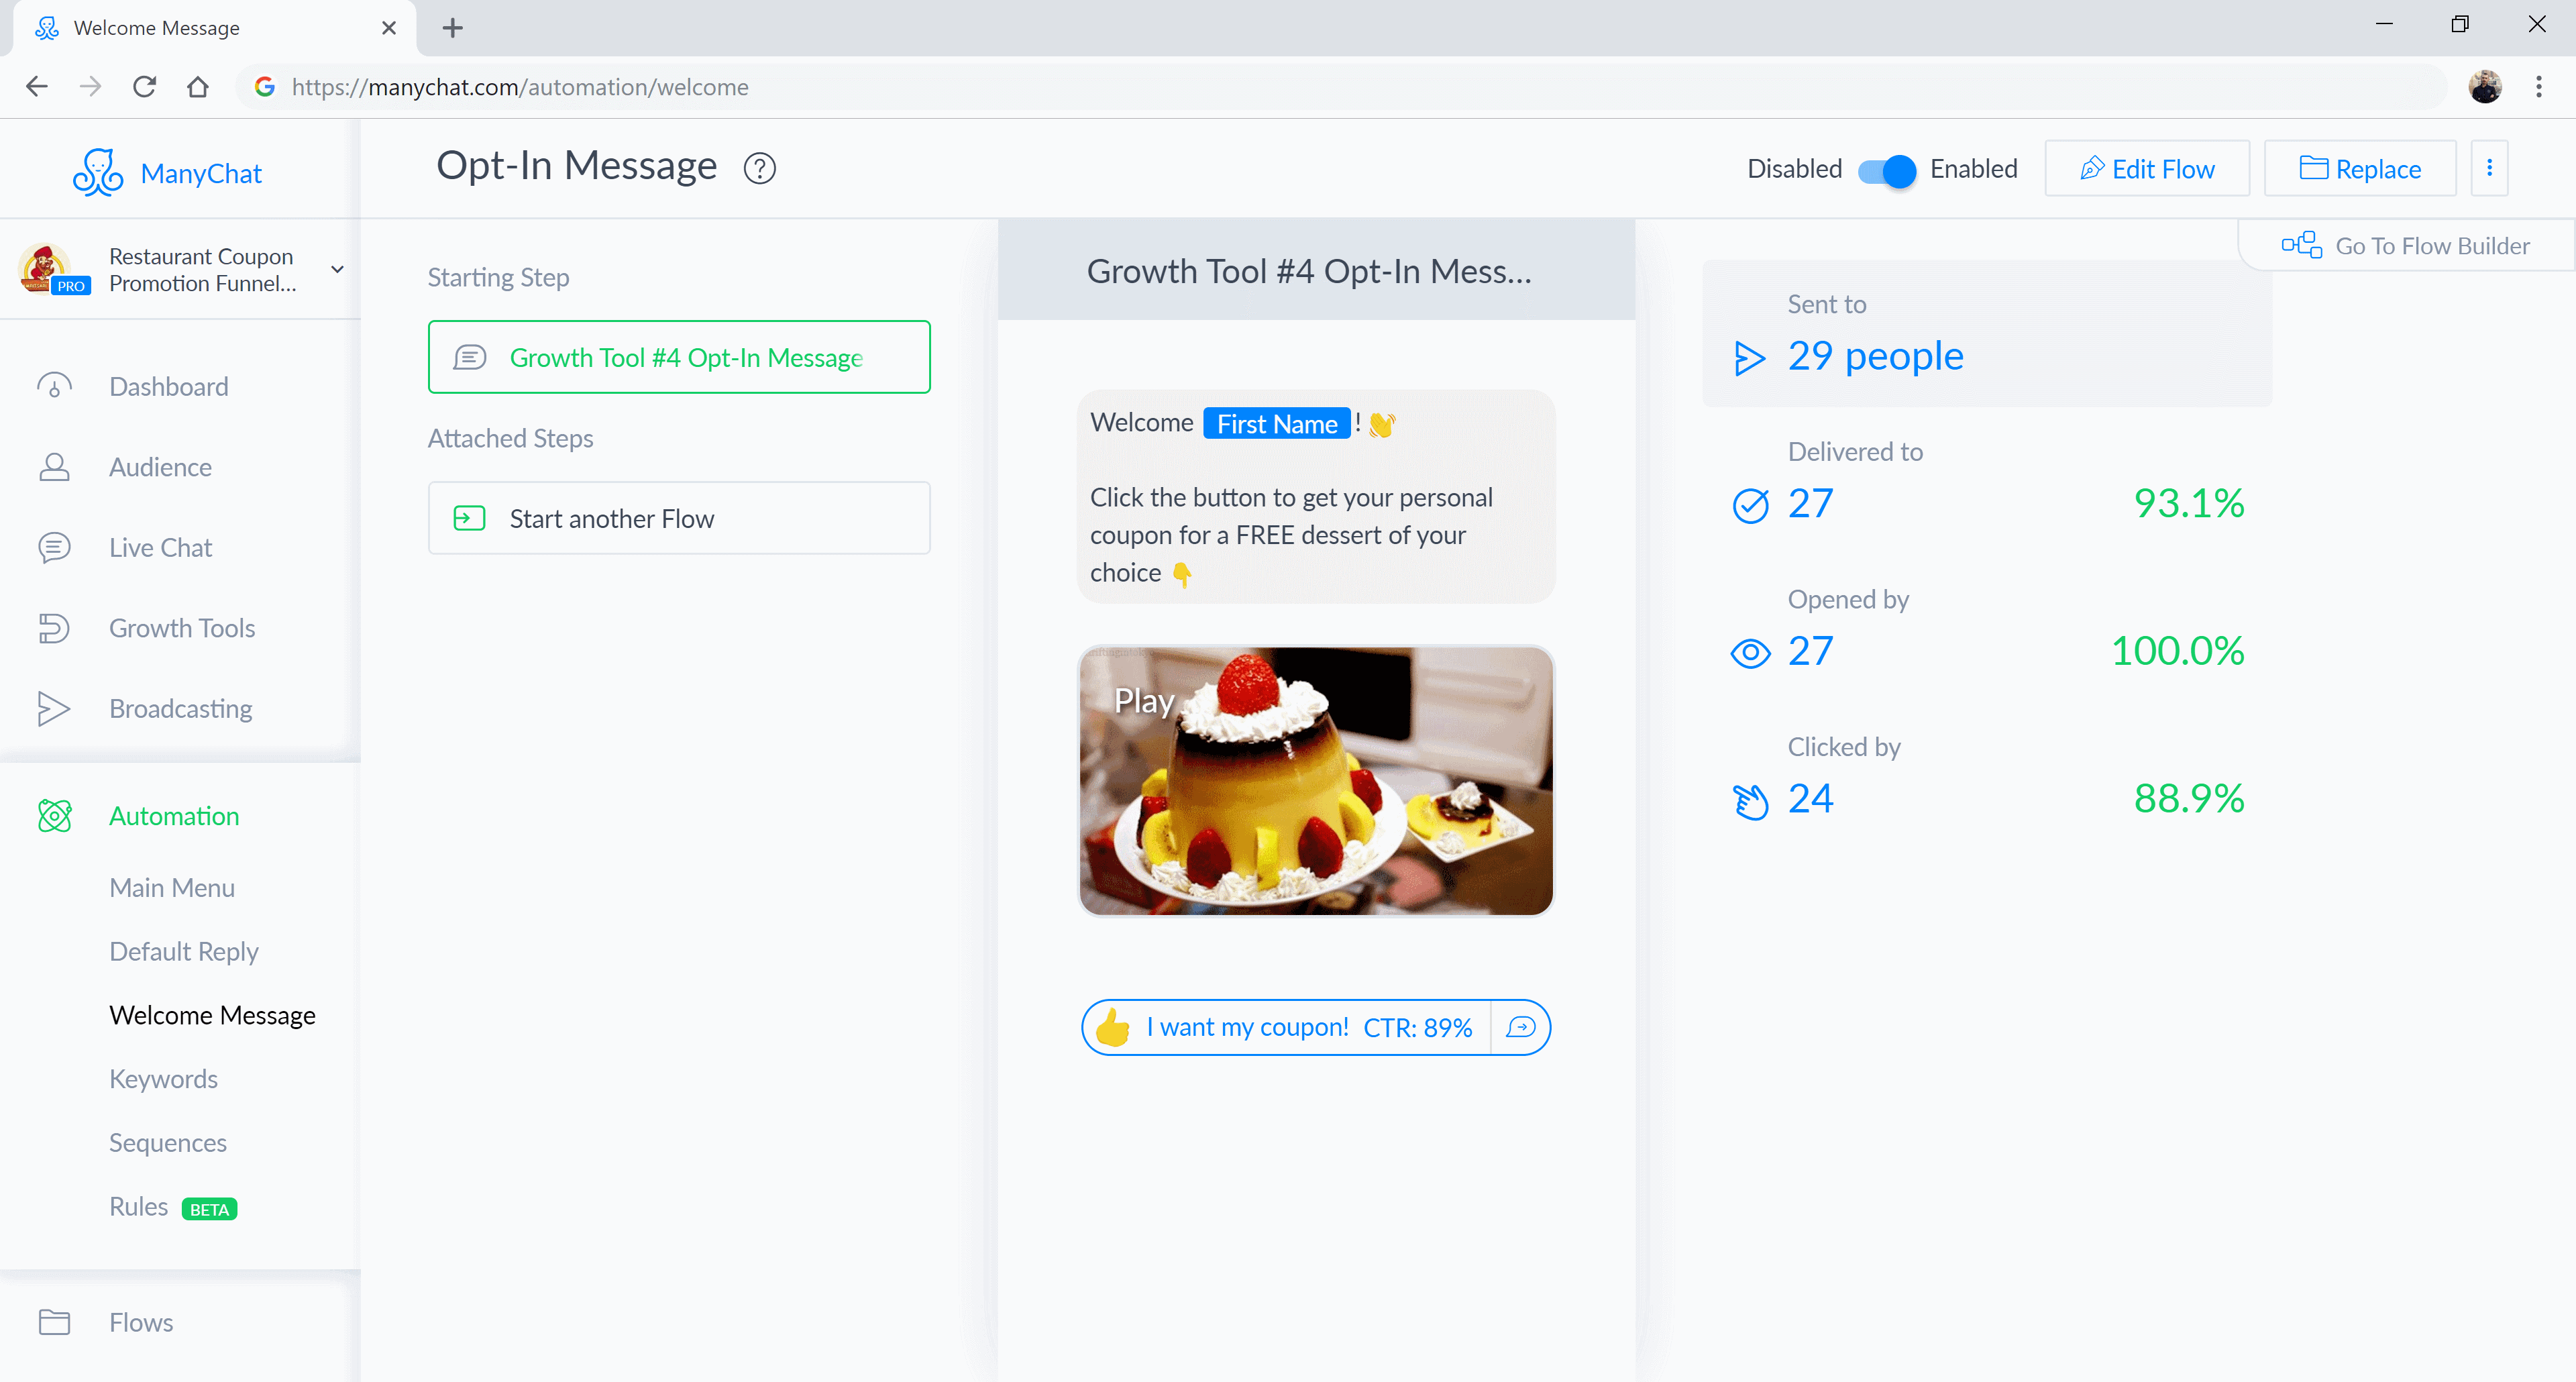 ManyChat flow editor screenshot for Restaurant Coupon Promotion Bot for Messenger